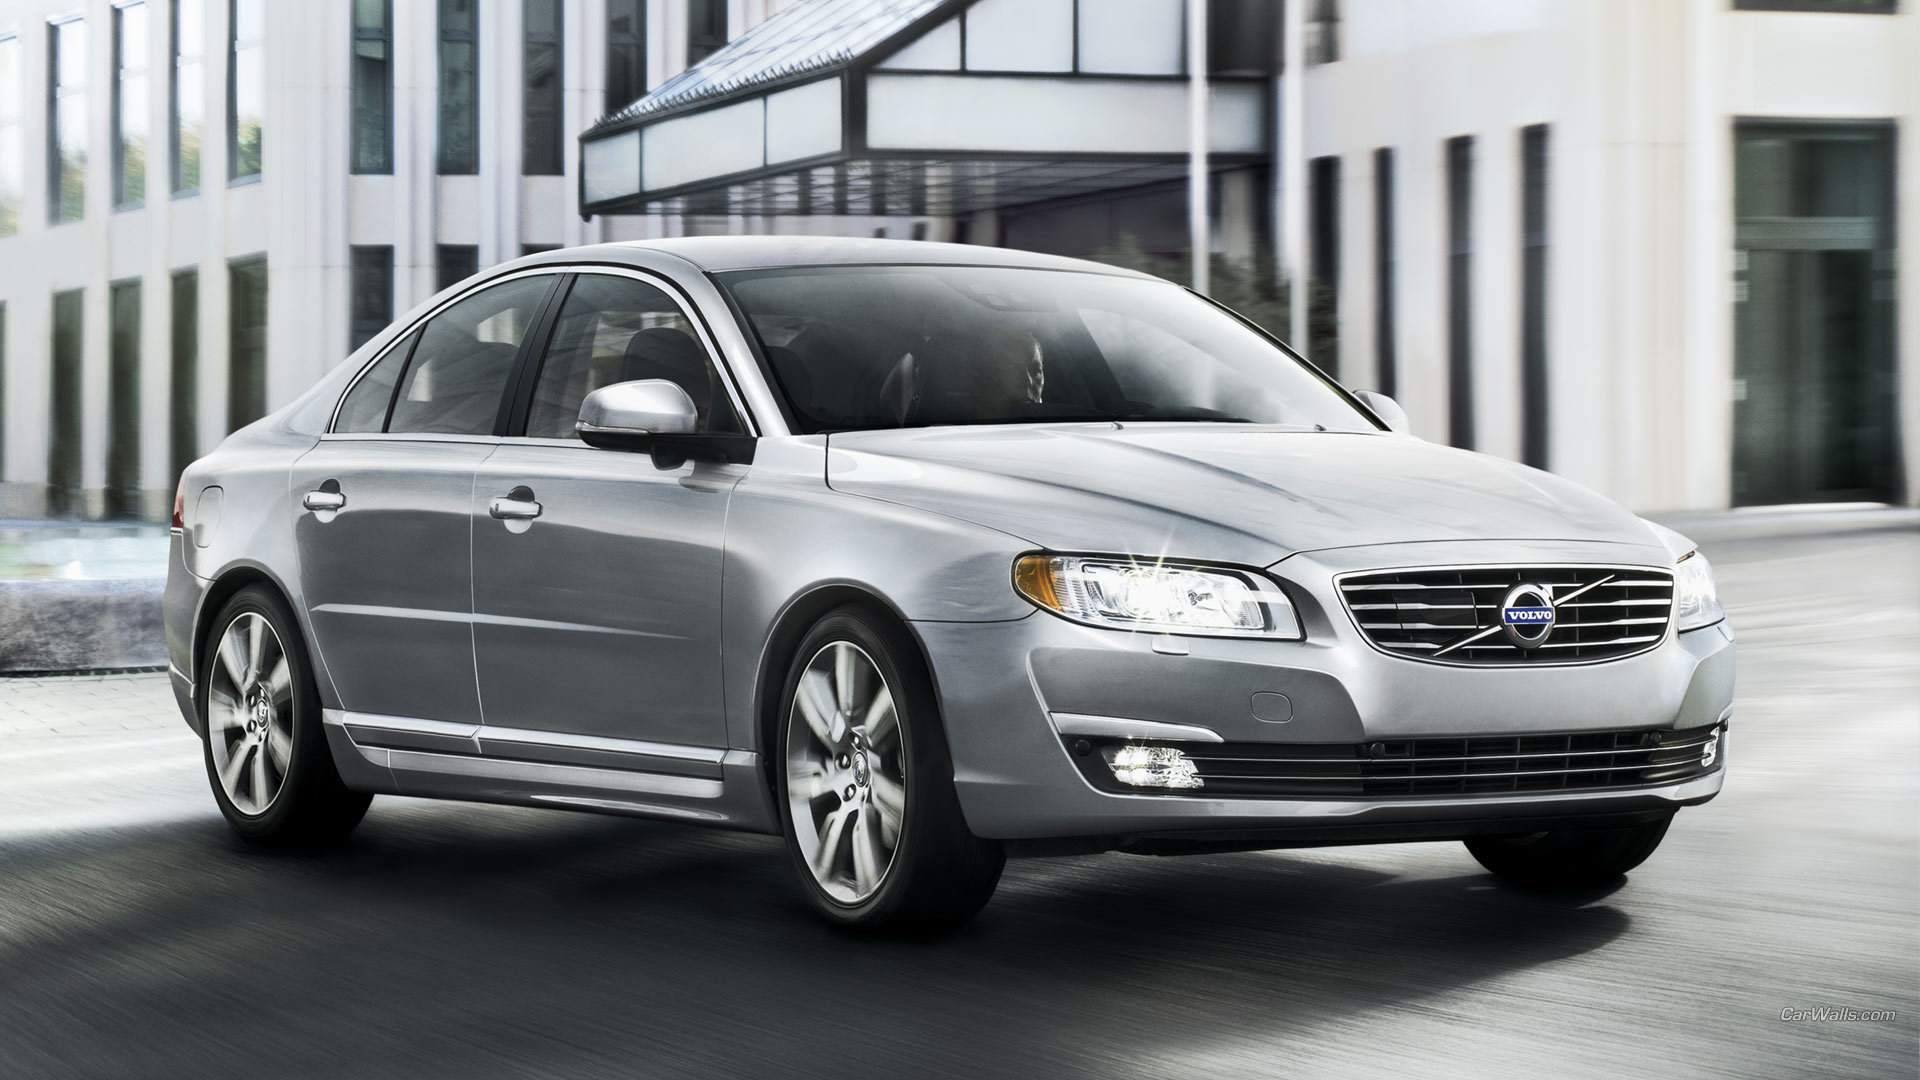 Free Volvo S80 high quality wallpaper ID:6909 for hd 1920x1080 desktop